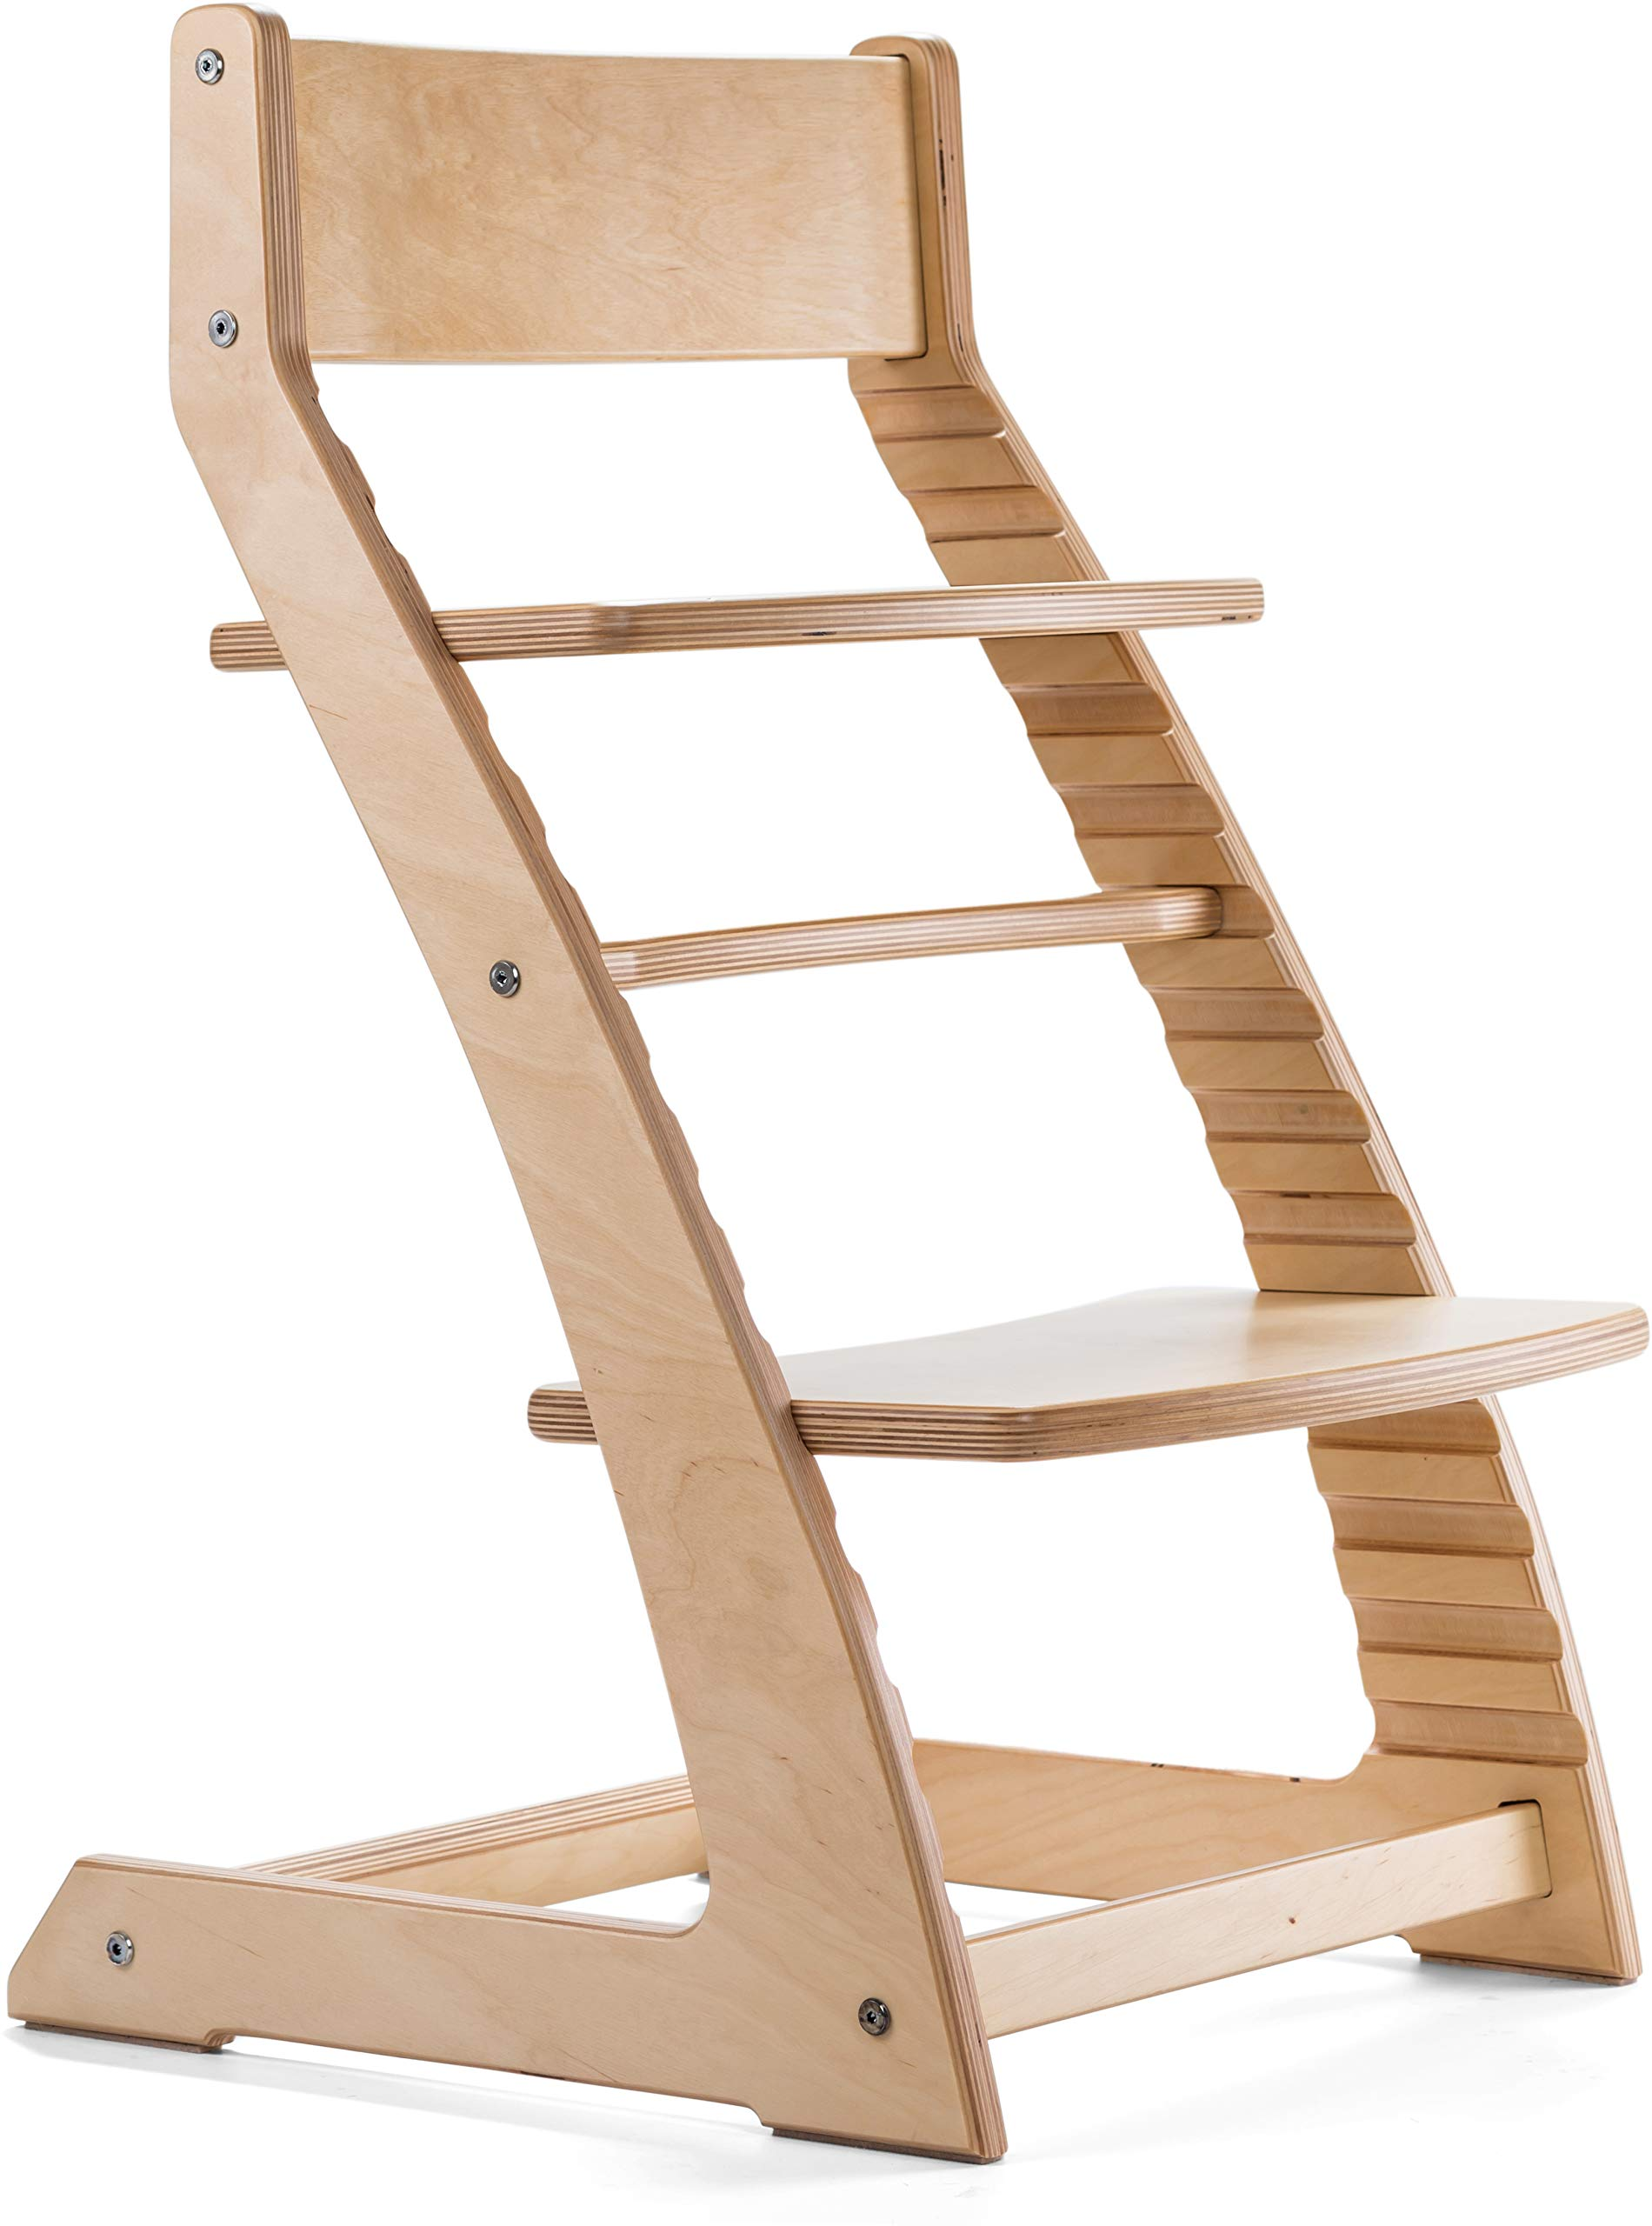 Natural Birch Heartwood Adjustable Wooden High Chair Baby Highchair Solution for Babies and Toddlers Dining Highchair from 24 Months